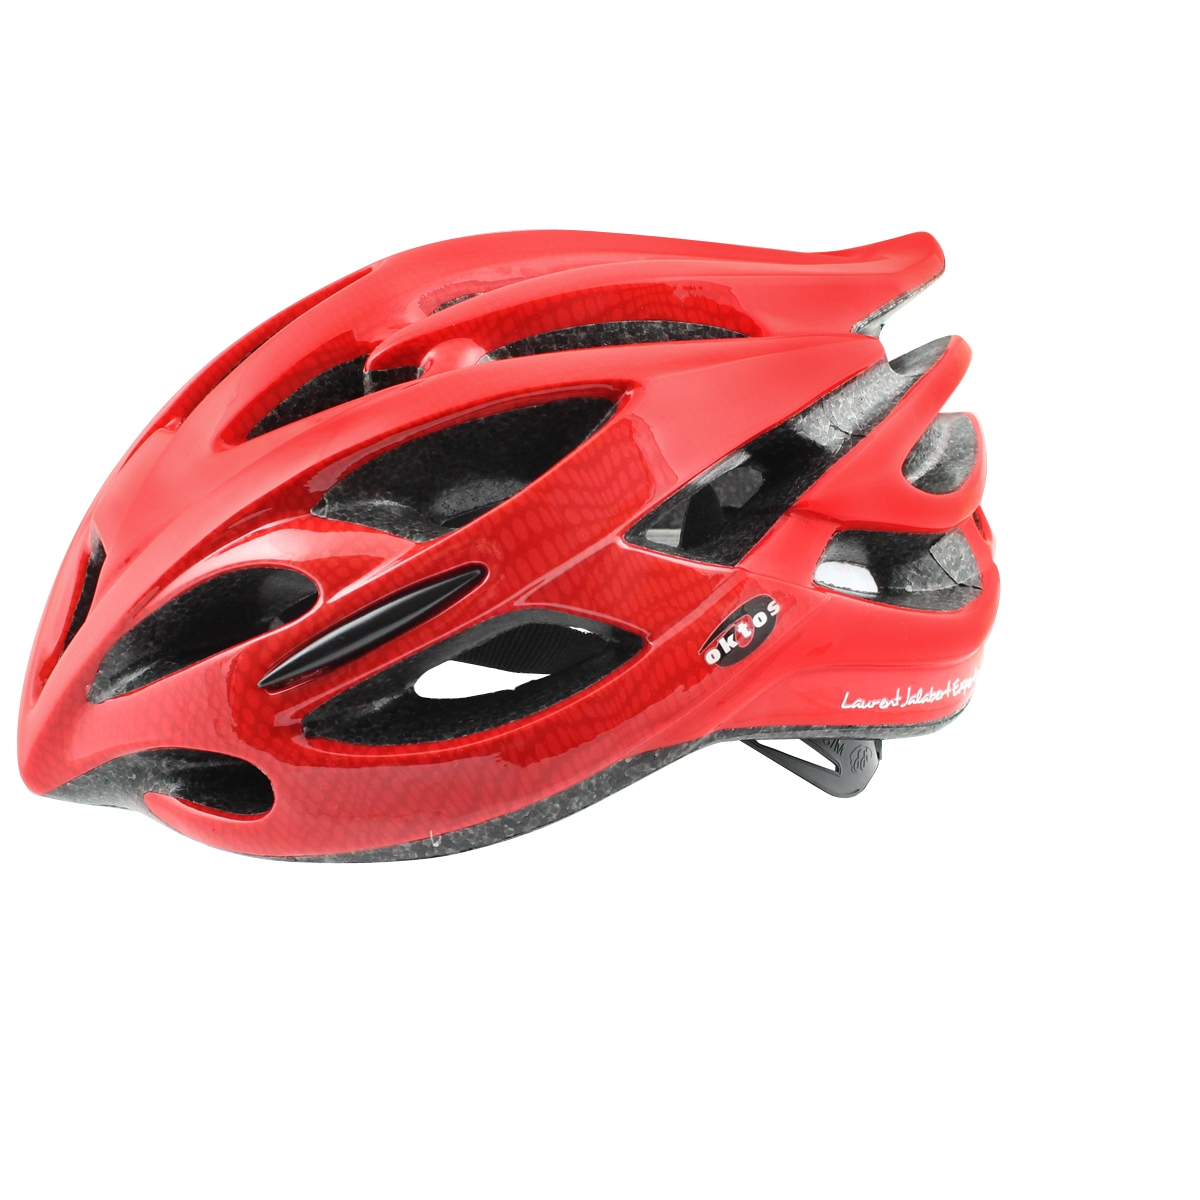 Casque vélo Oktos Racing Jalabert Rouge - S/M 52-58 cm